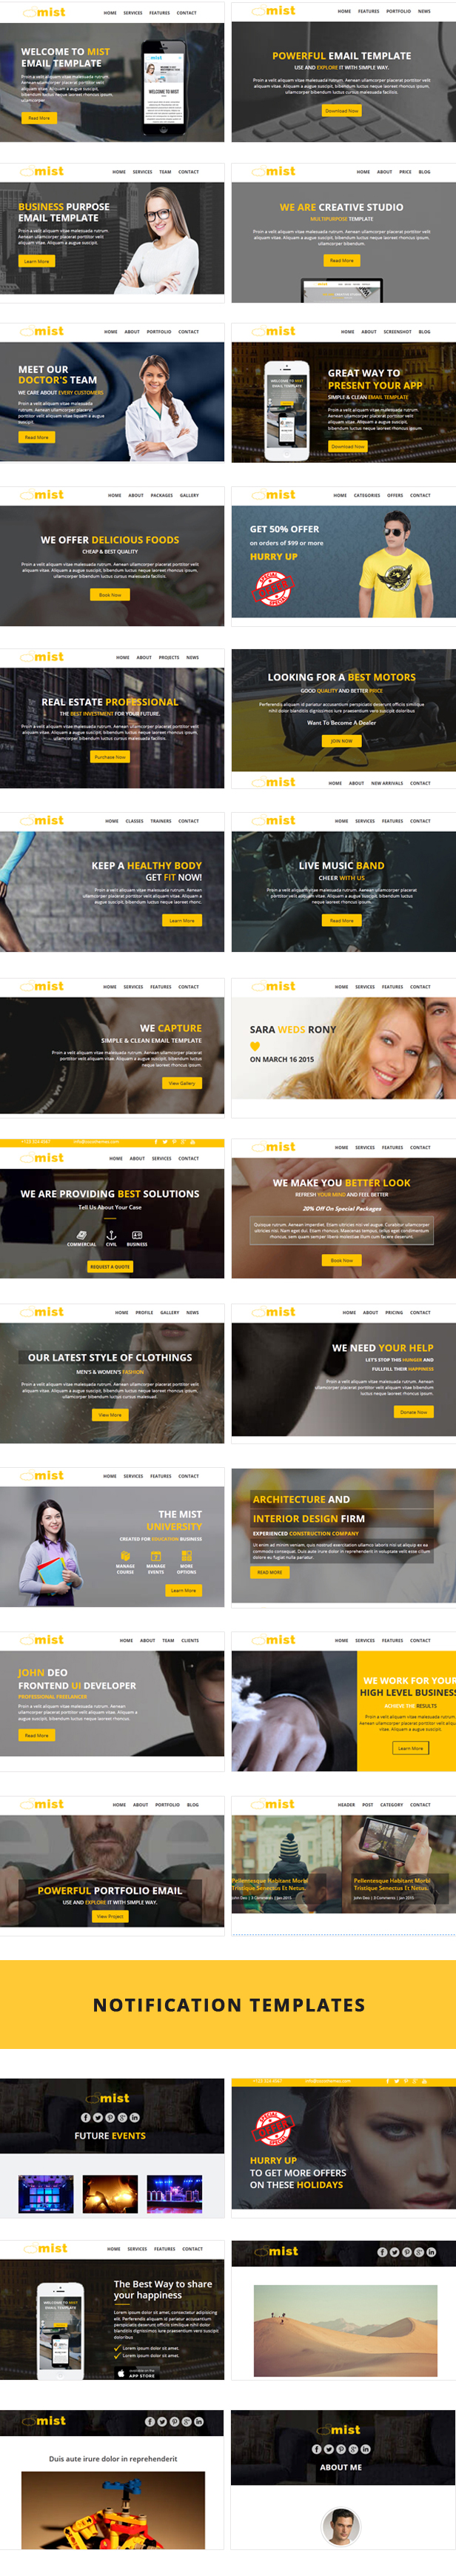 Mist - 30 Business Email Templates + Themebuilder Access